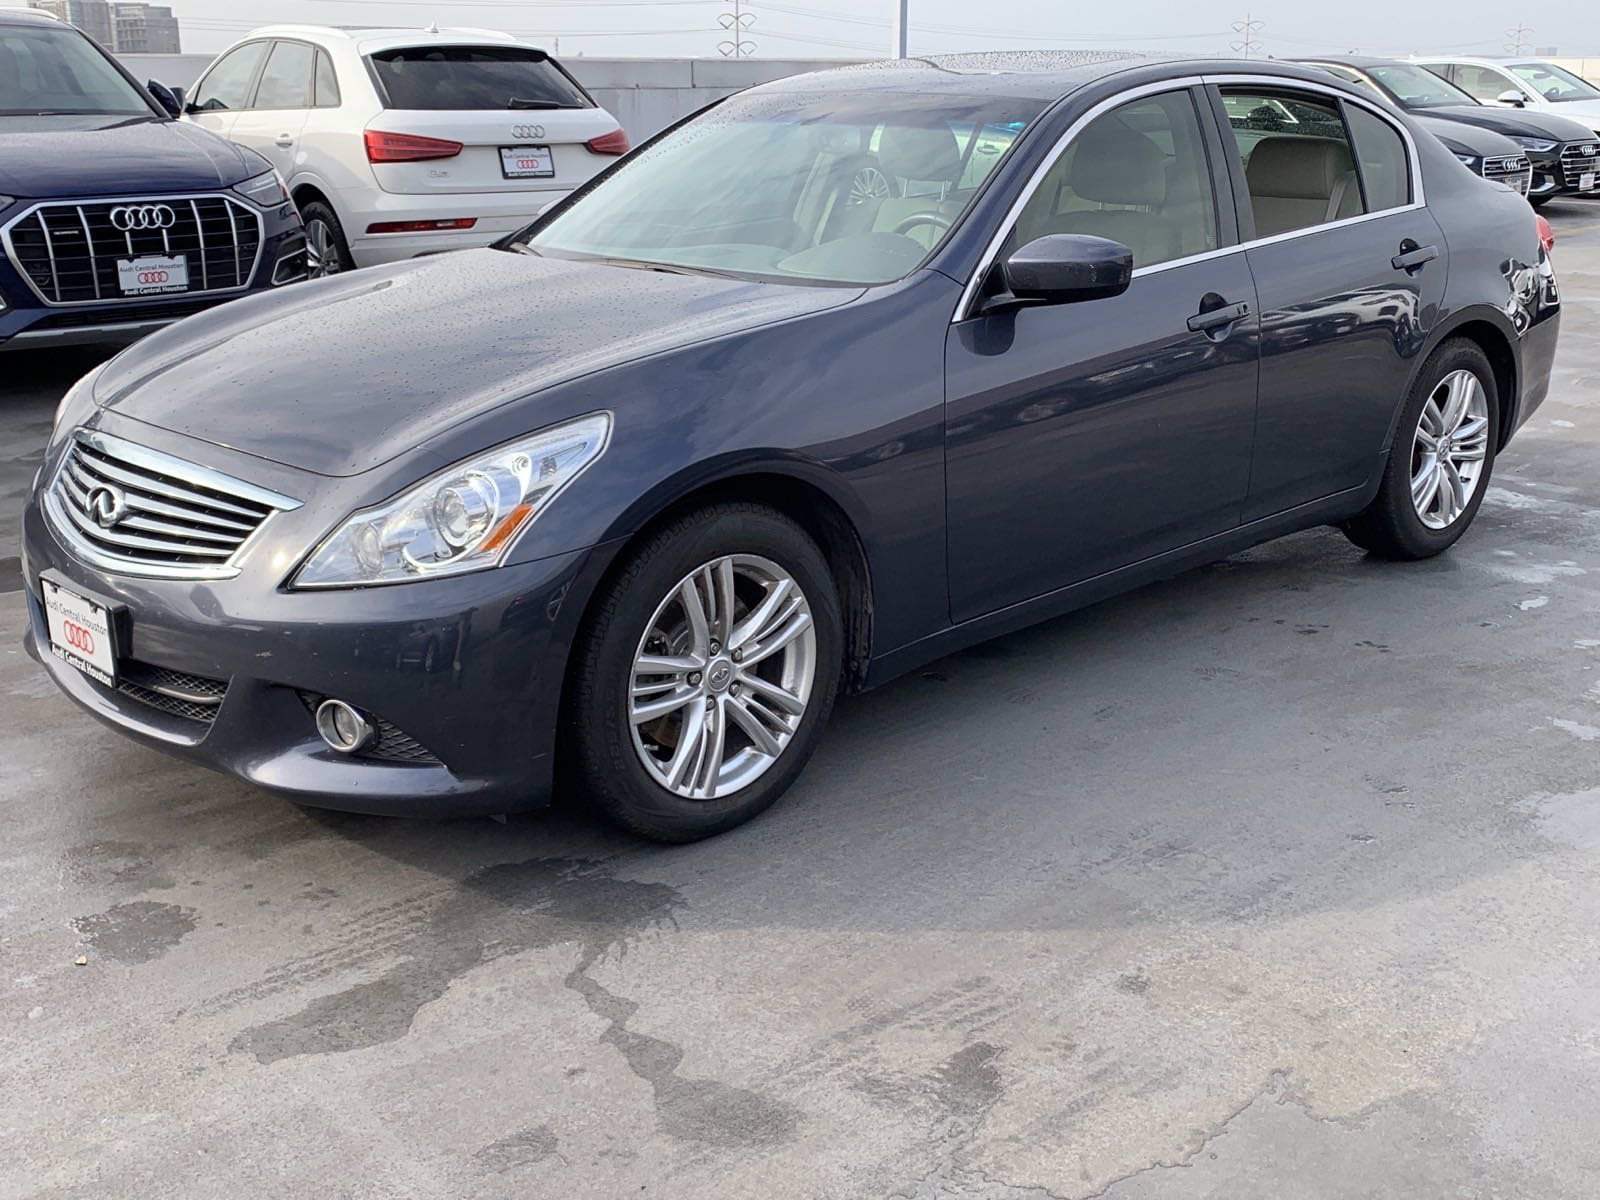 Used 2012 Infiniti G37 For Sale In Houston Tx Stock Tcm930696